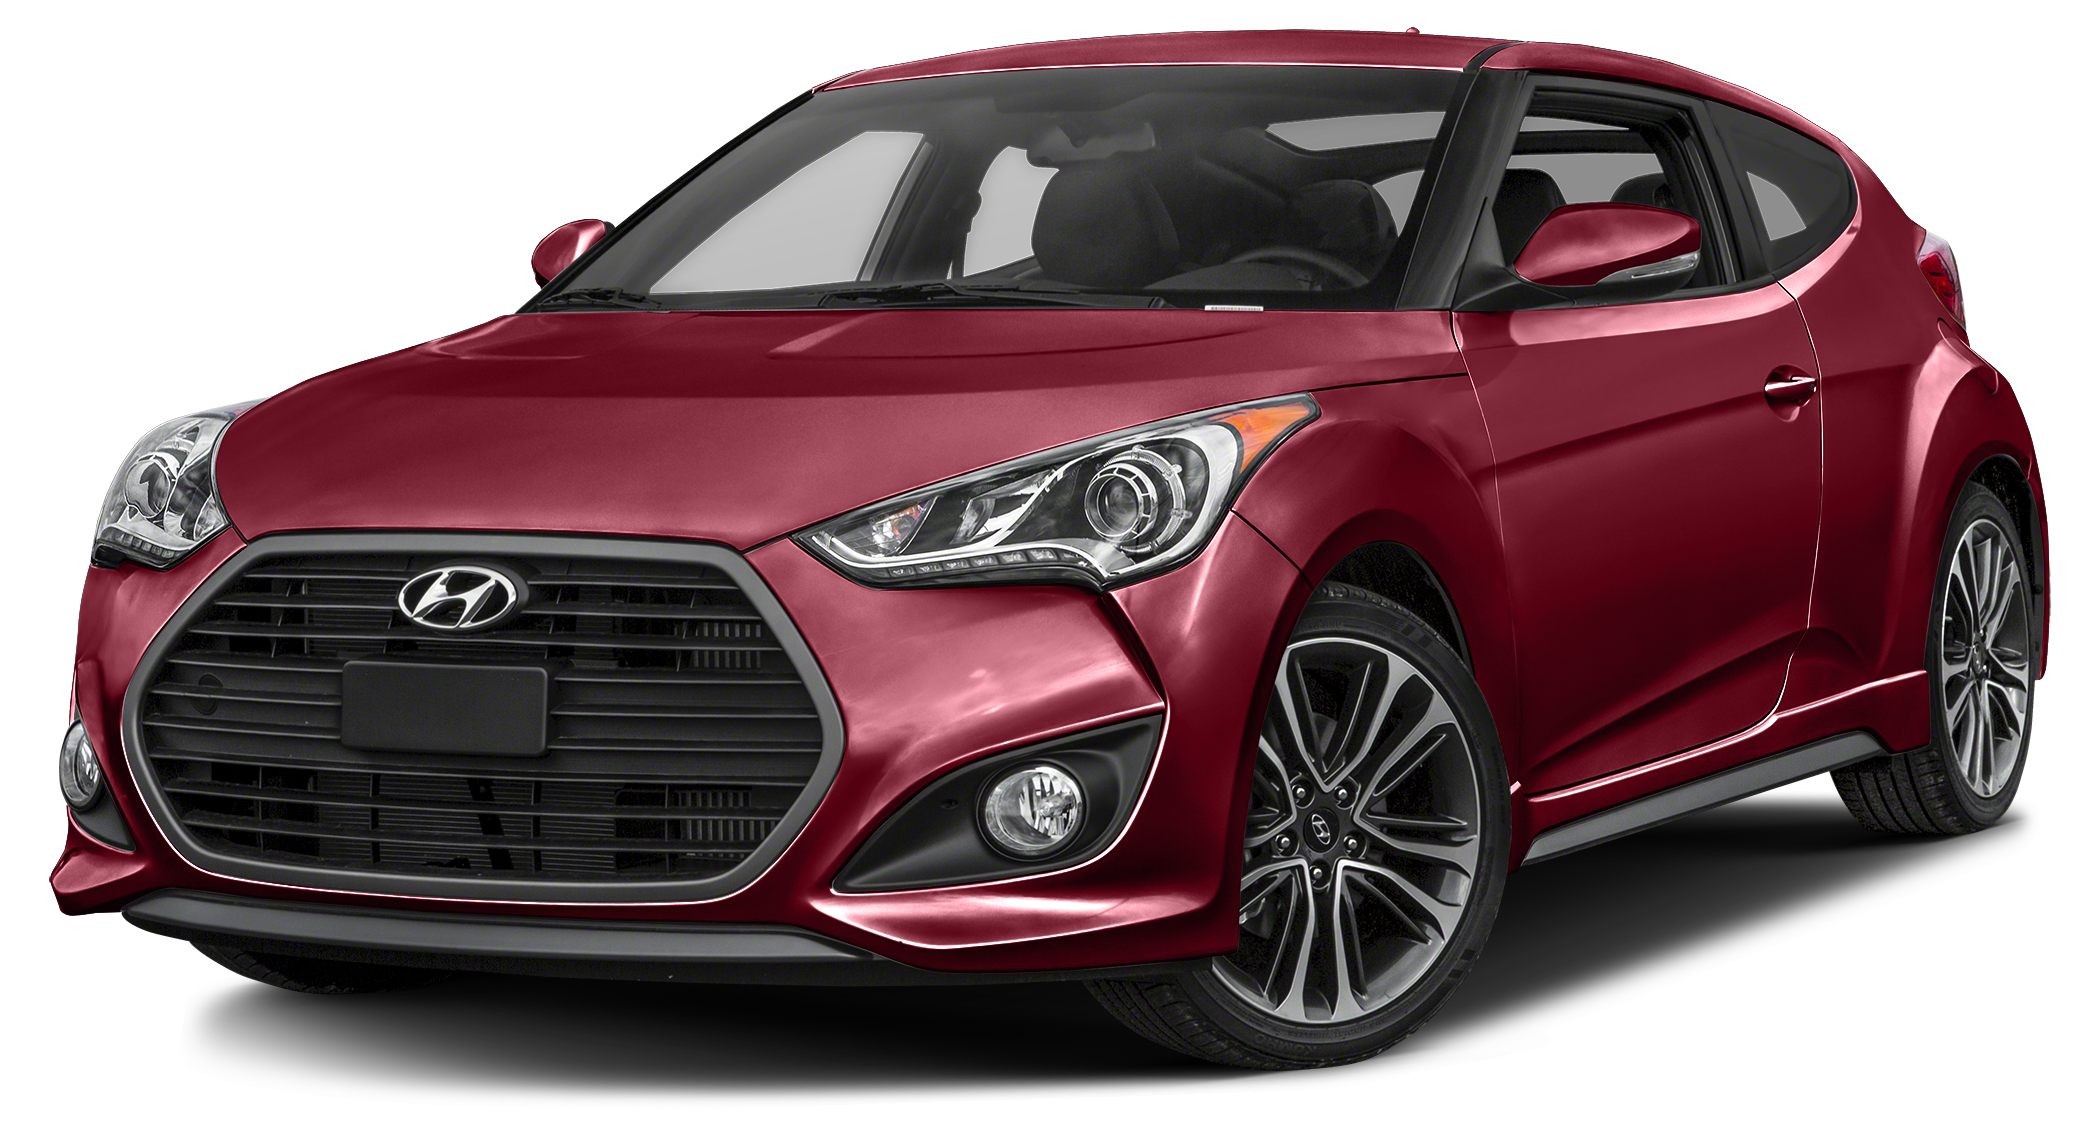 2016 Hyundai Veloster Turbo Miles 819Color Boston Red Stock H46485 VIN KMHTC6AE3GU271215